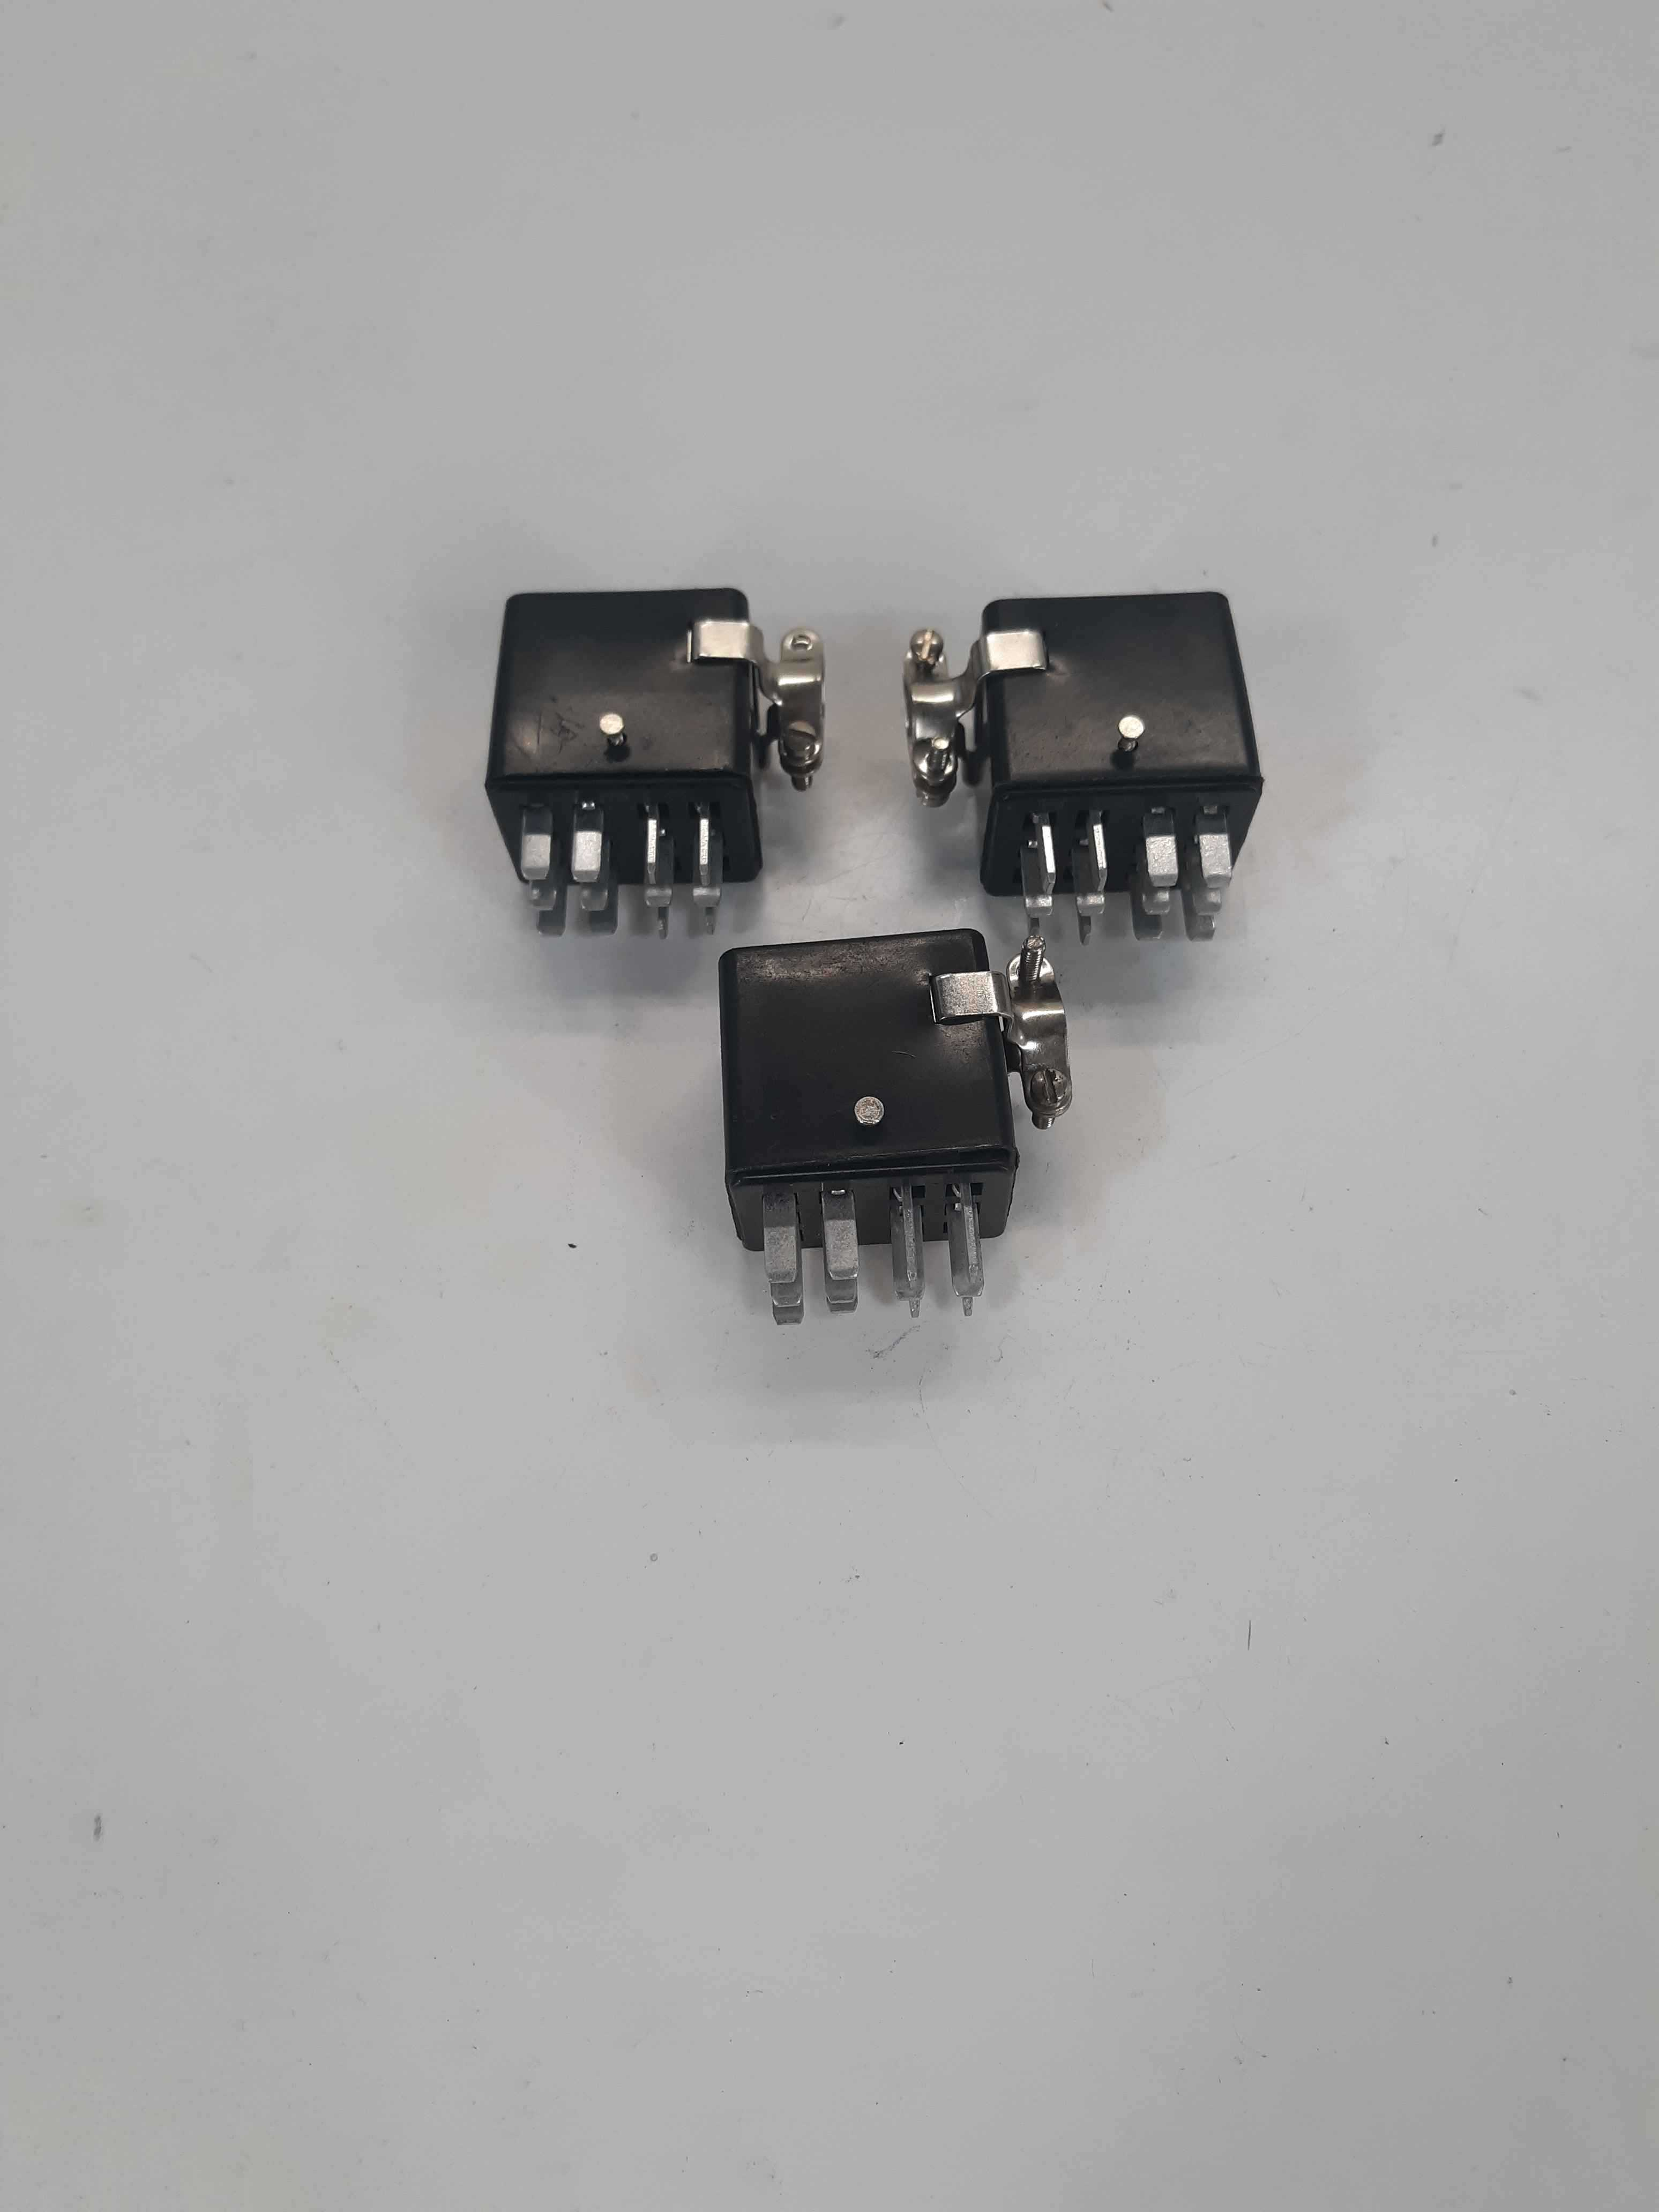 TRW Cinch Plug 12 Contact (Lot of 3)